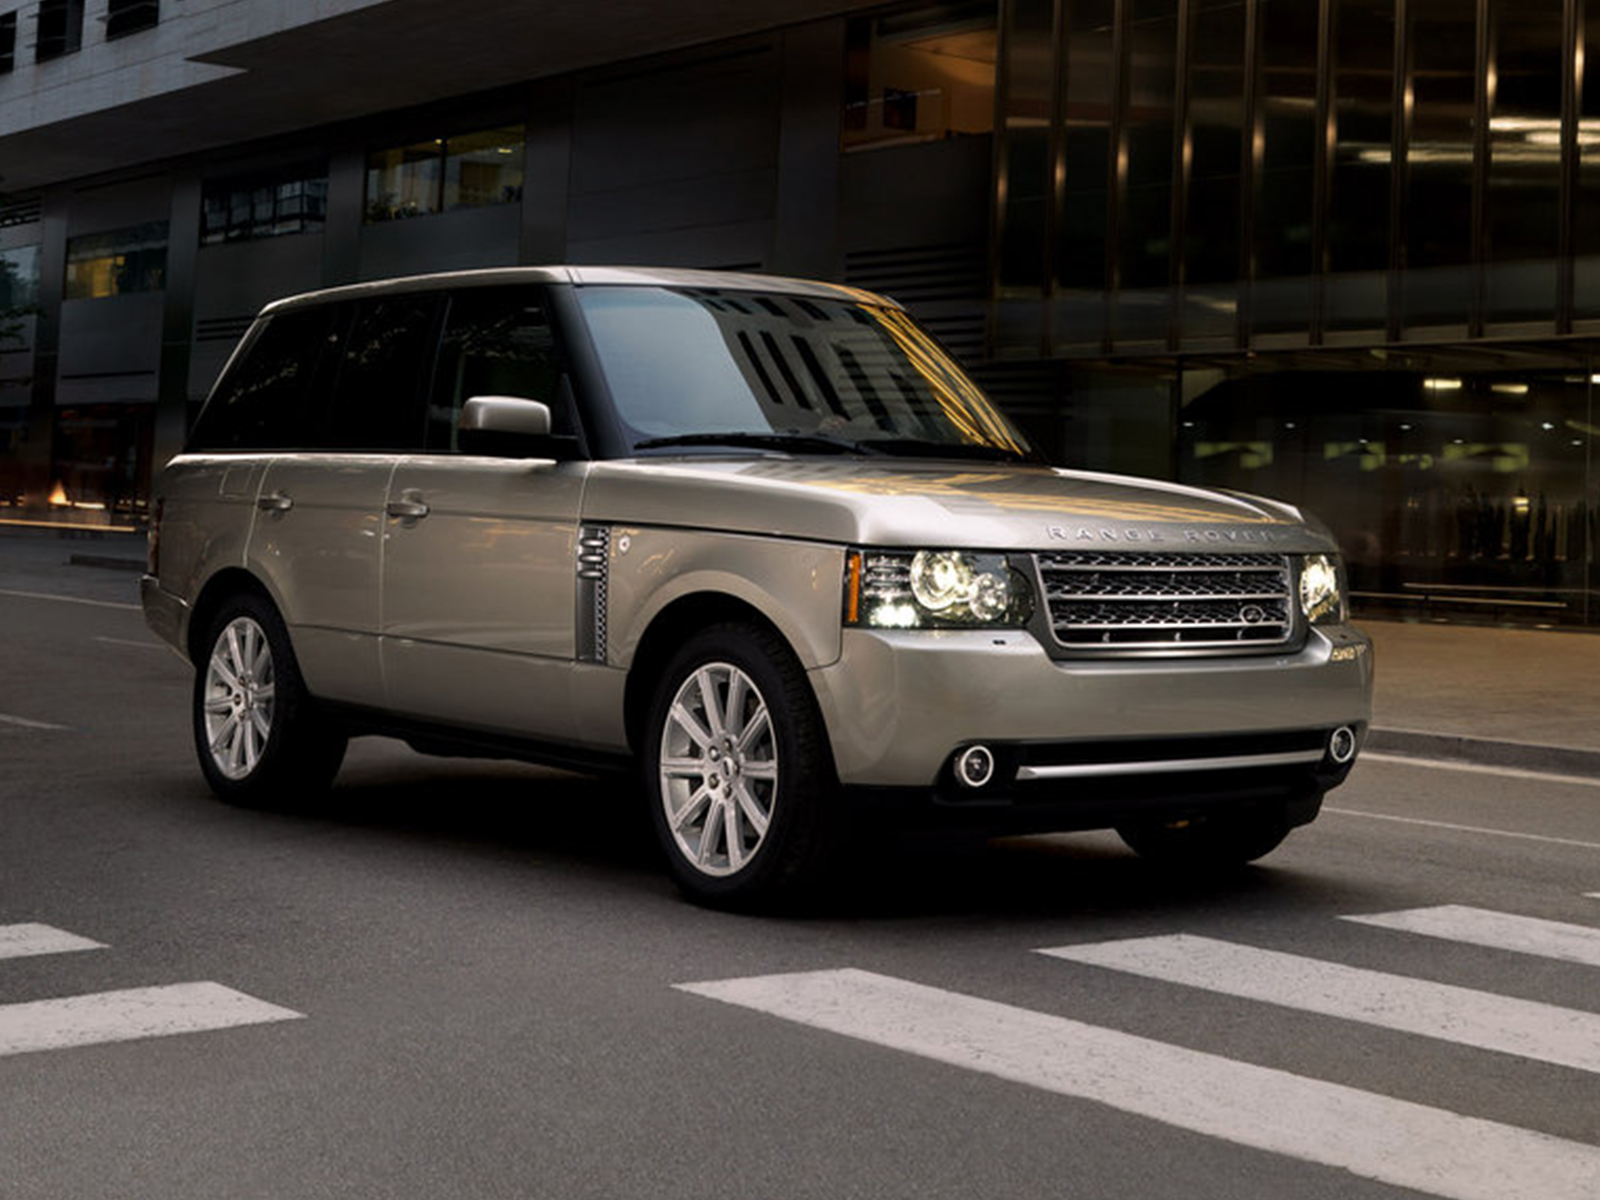 2010 Range Rover 5.0 supercharged